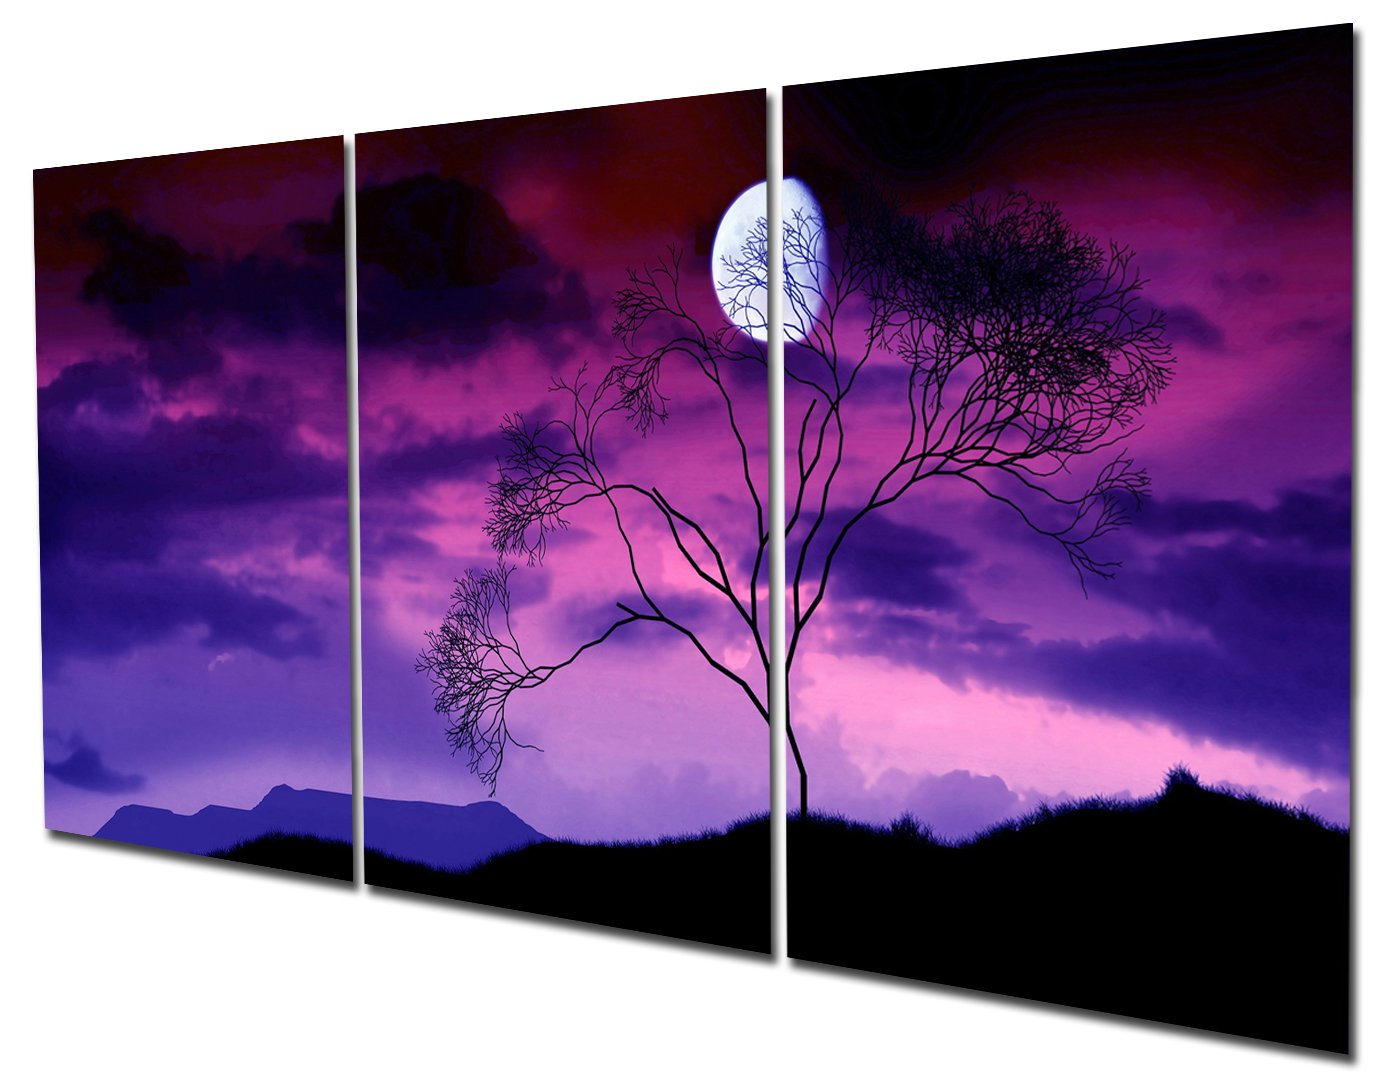 Gardenia Art - Moon on Trees At Night Canvas Wall Art Paintings Purple and Blue Abstract Landscape Artwork for Home and Office Decoration, 16X24'' Per Piece, Unframed by Gardenia Art